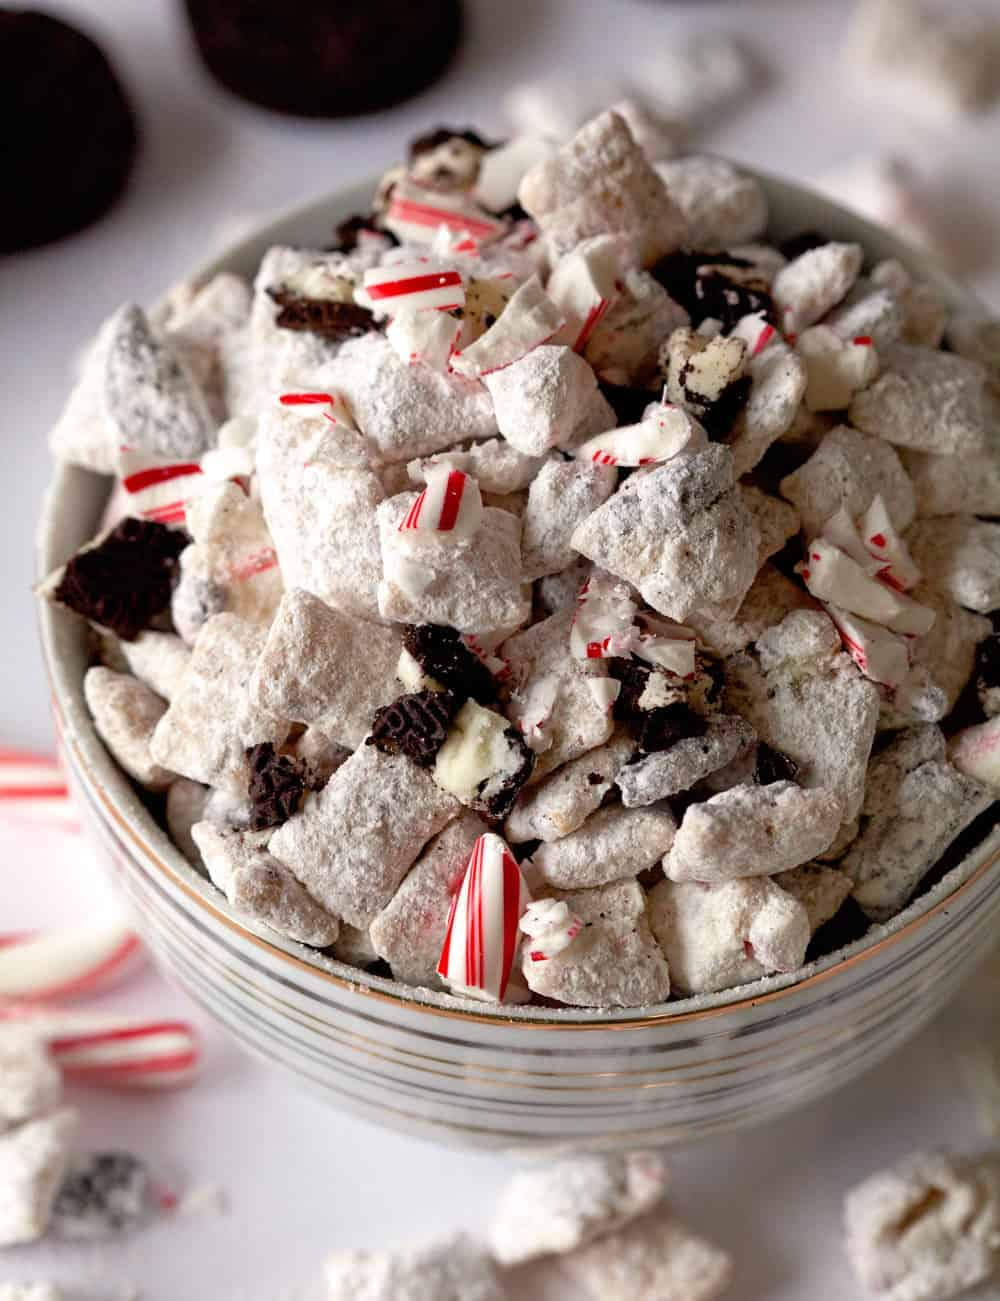 Peppermint Oreo muddy buddies